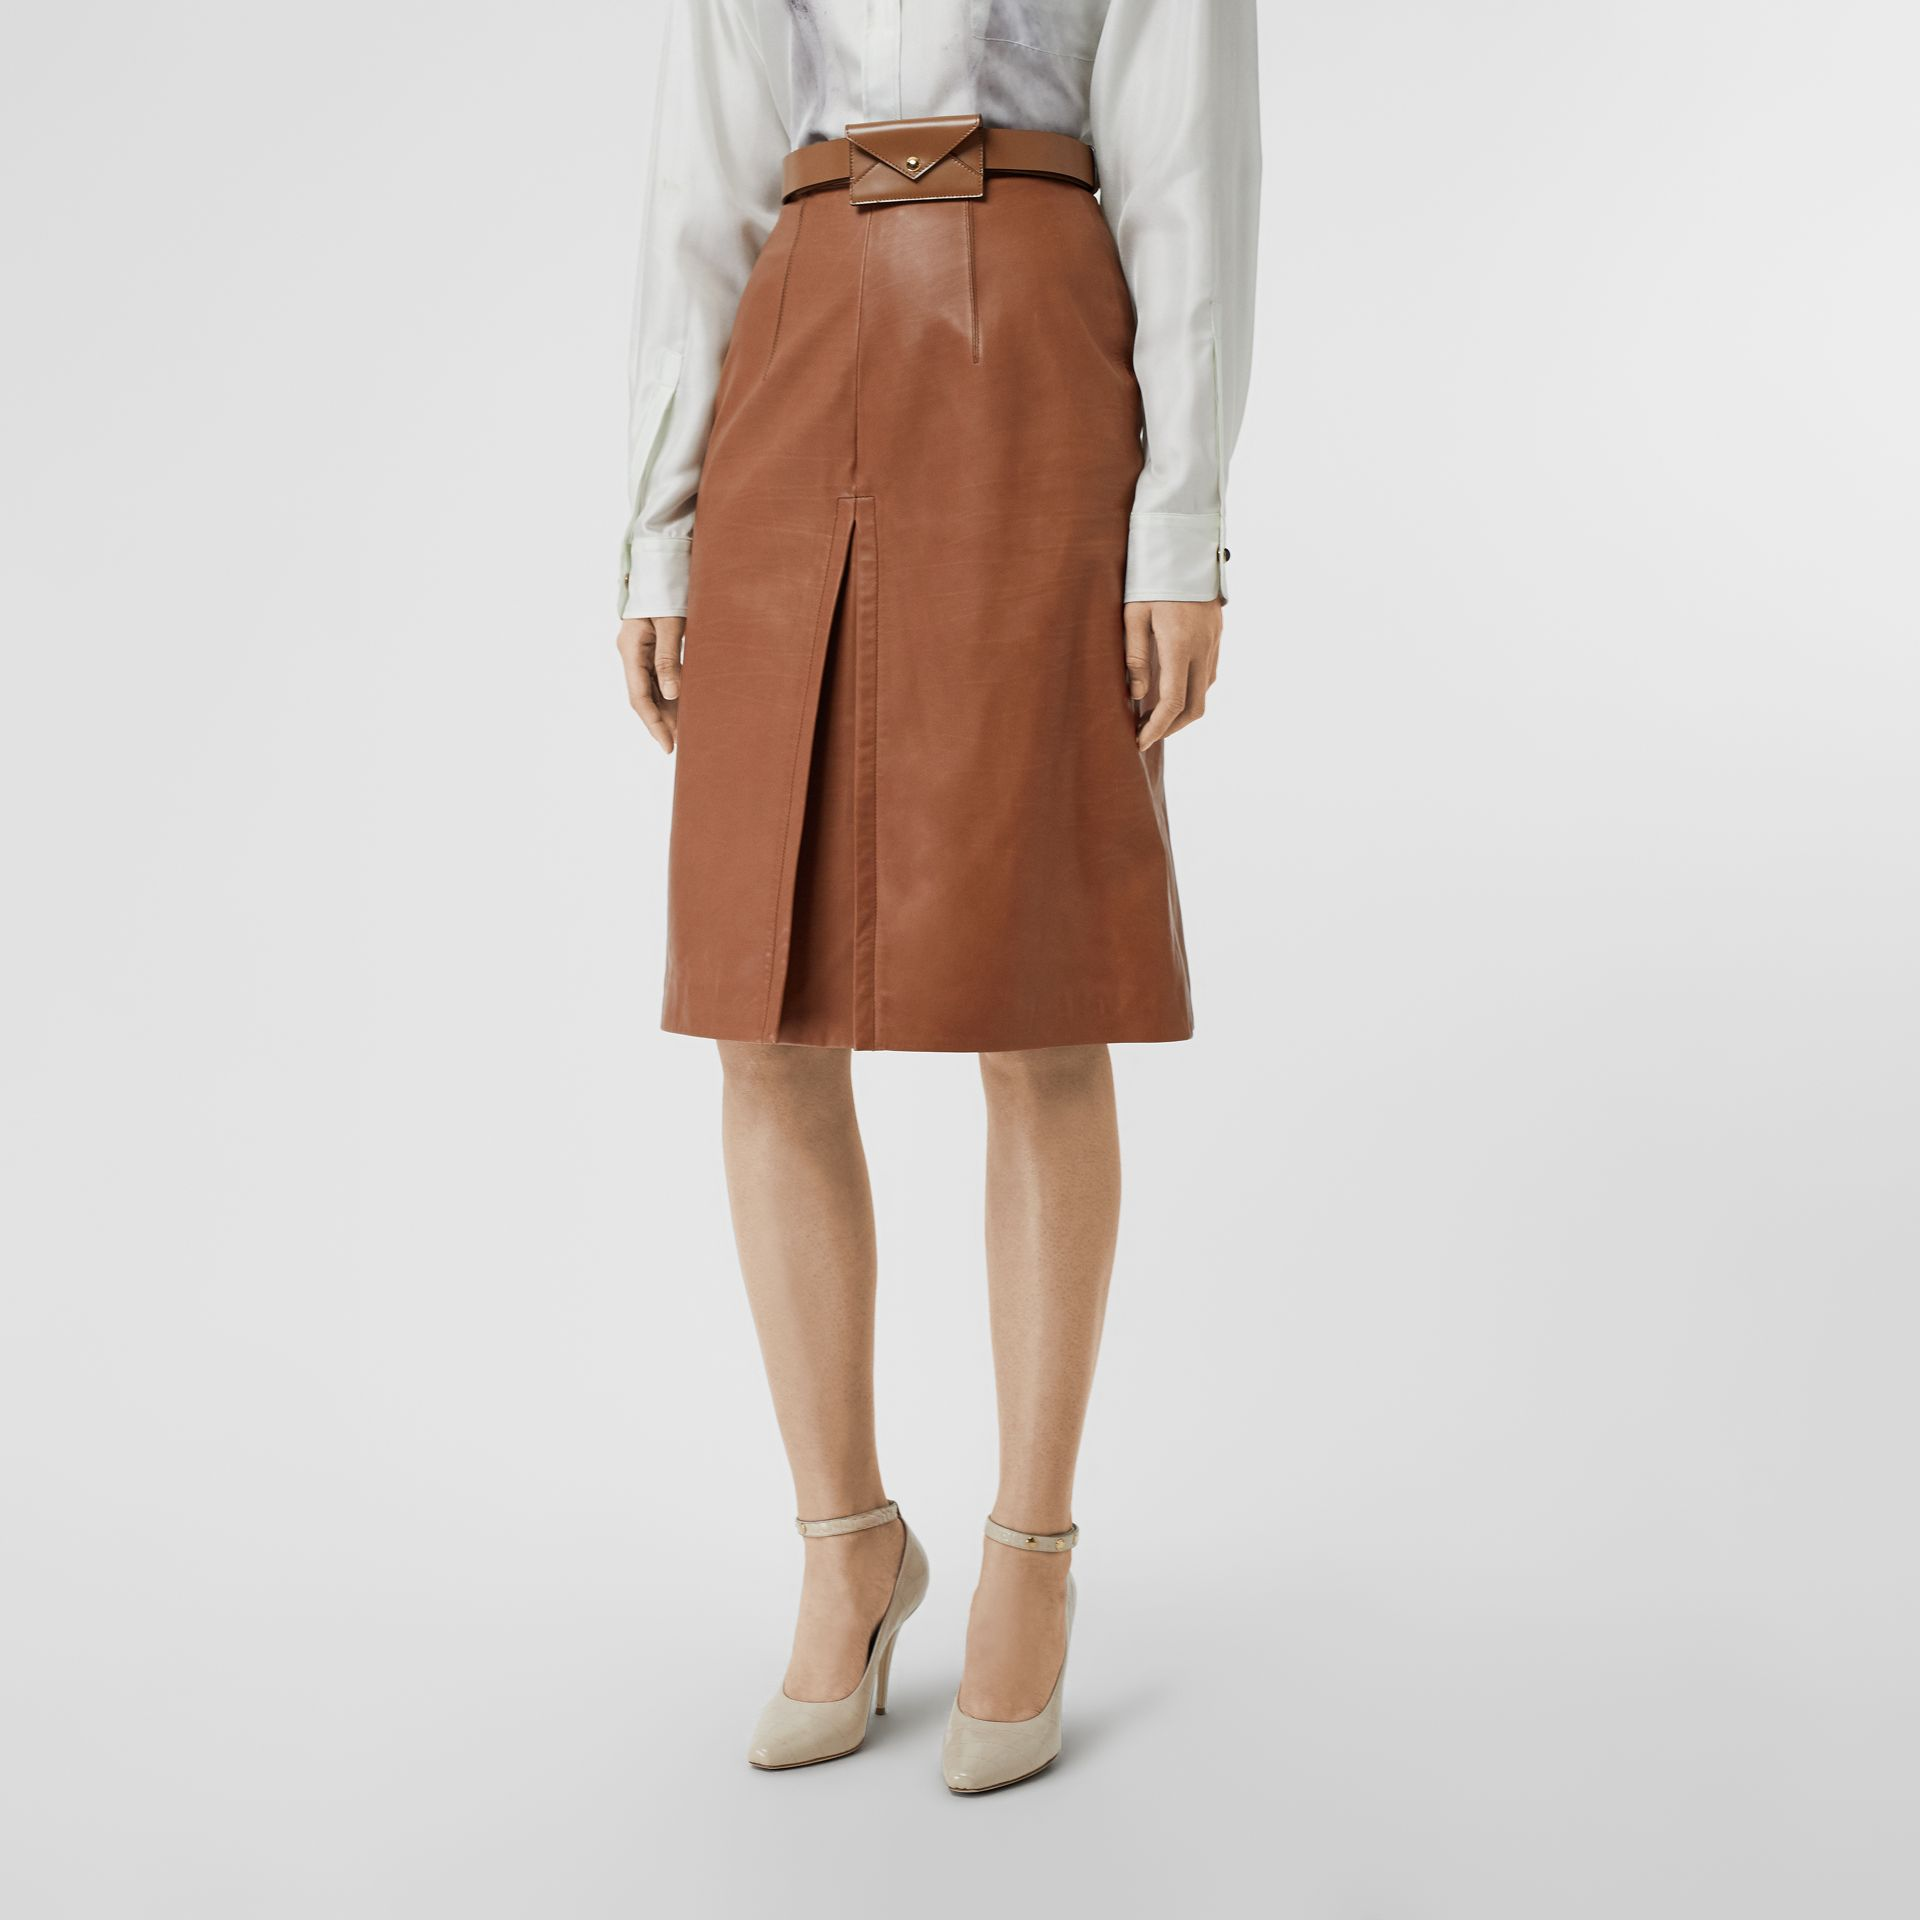 Box Pleat Detail Leather A-line Skirt in Flaxseed - Women | Burberry Canada - gallery image 4